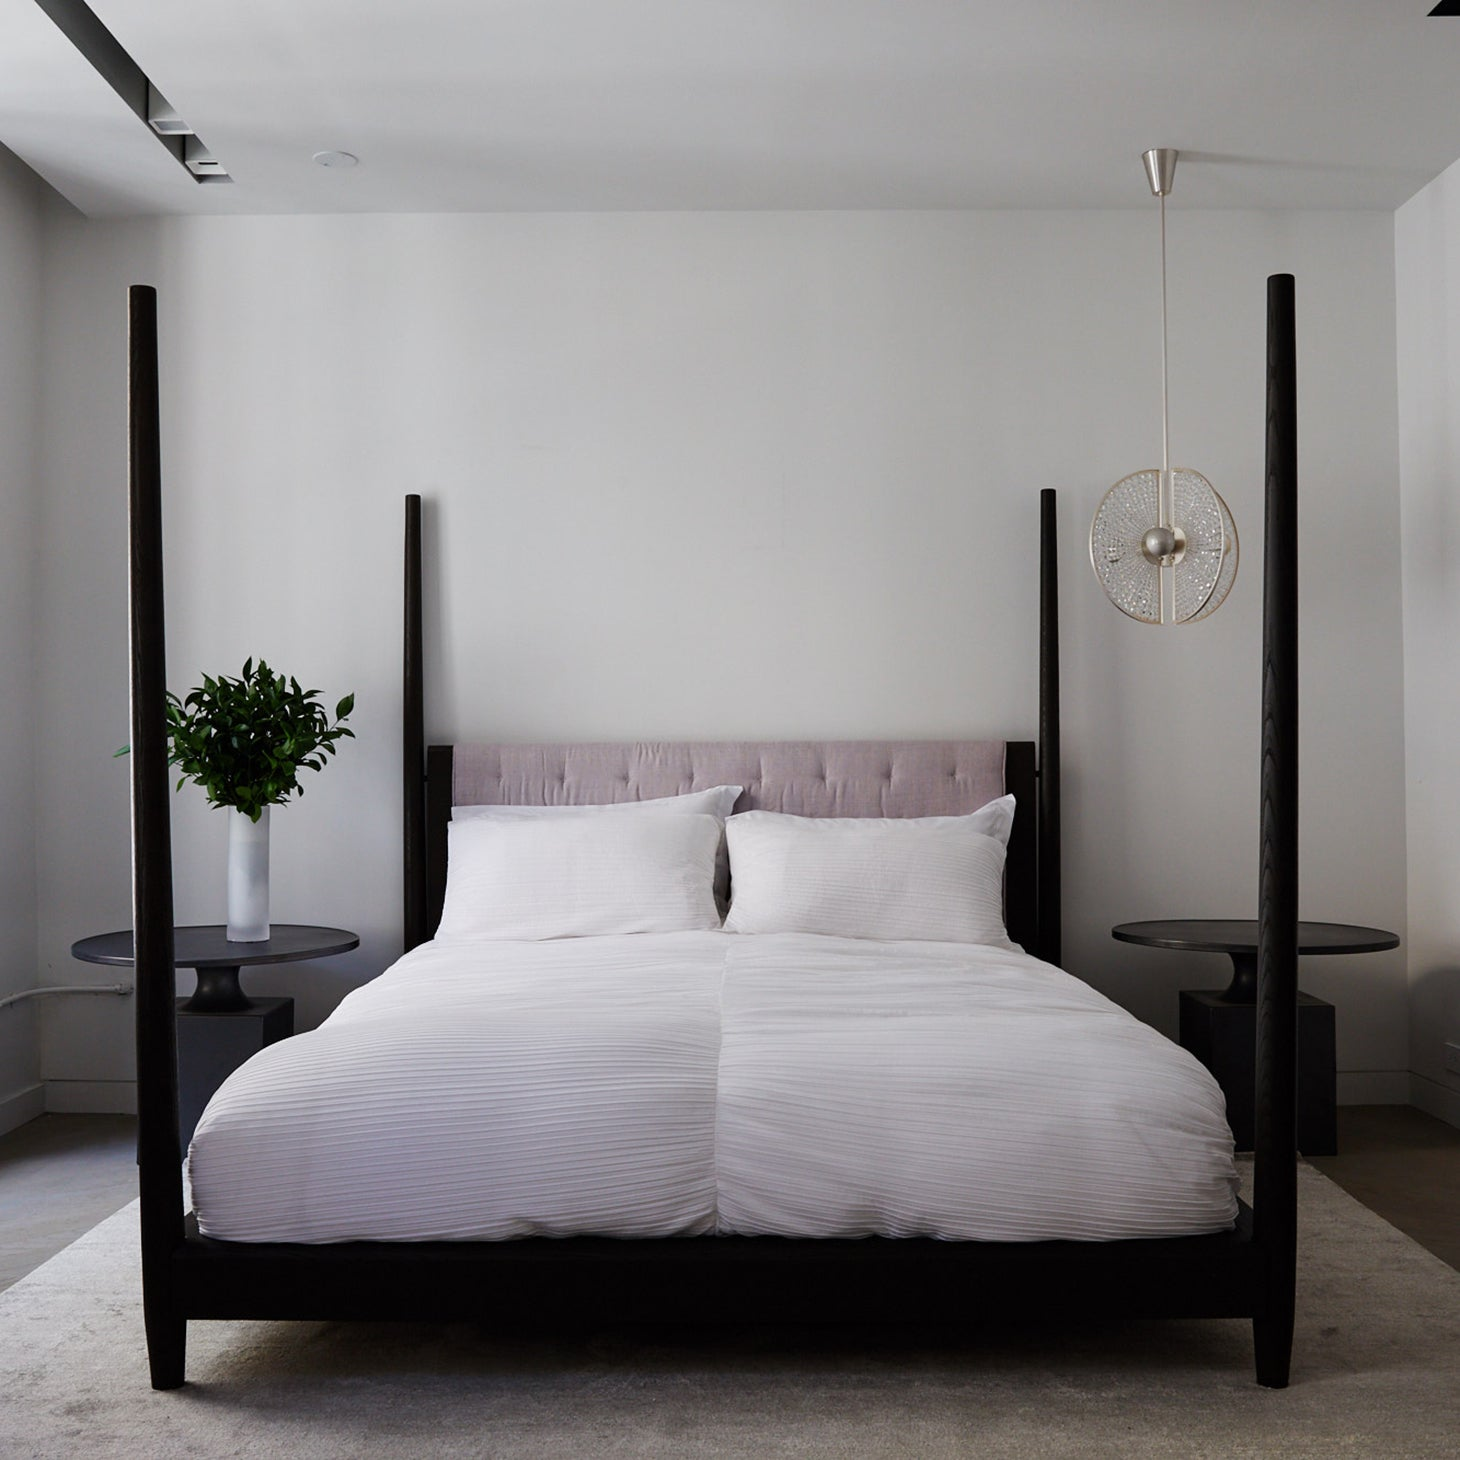 Pont Des Arts Beds Christophe Delcourt Designer Furniture Sku: 999-110-10001